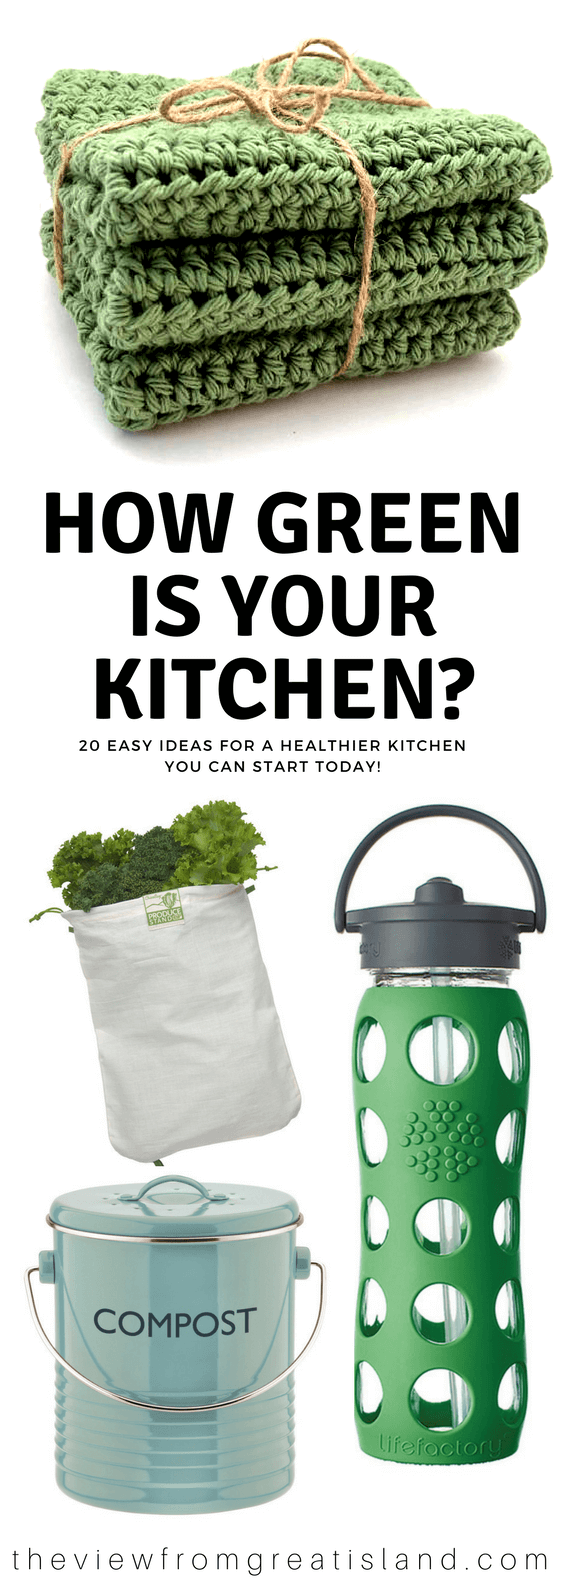 It's Earth Day ~ and a great time to take stock ~ do you run an environmentally friendly, sustainable, healthy kitchen? Are you making the best choices for your family and our planet? Here are 20 easy steps to a greener kitchen this year. #reusuablebowlcovers #unpapertowel #composting #diydishsoap #diycleaners #clothproducebags #glasswaterbottles #reusablebaggies #clothgrocerybag #beeswrap #knitteddishcloths #earthday #greenkitchen